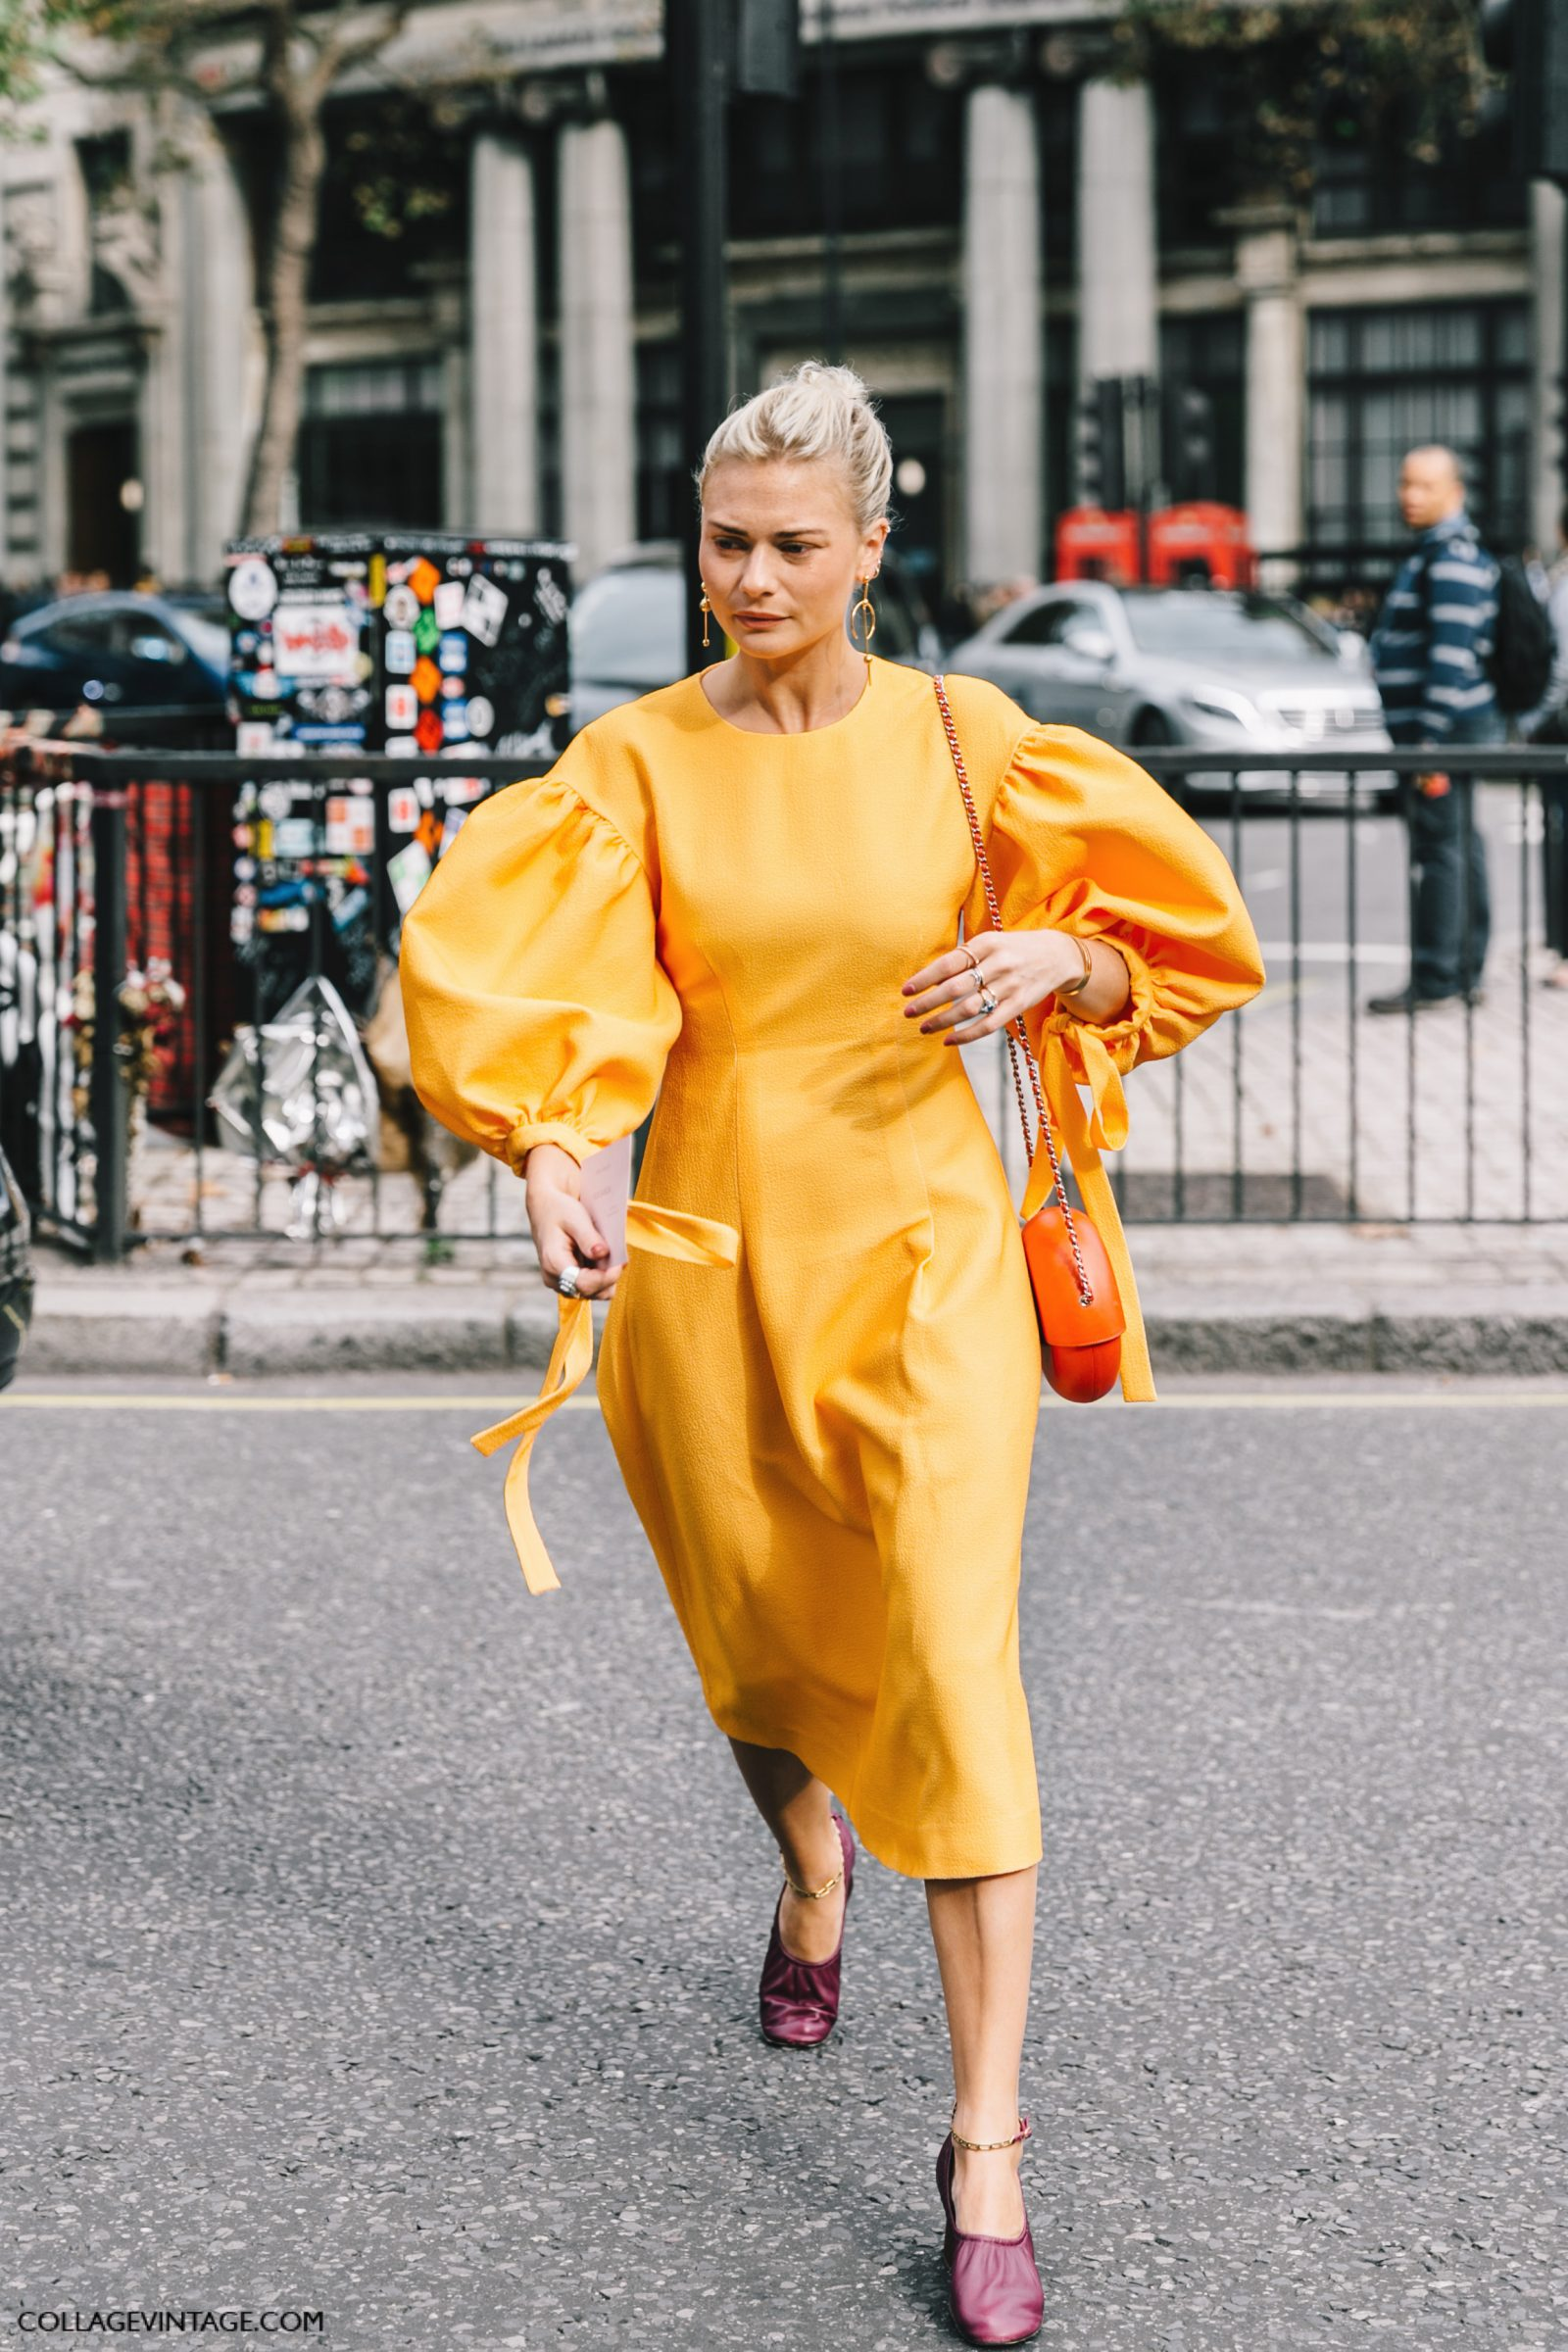 lfw-london_fashion_week_ss17-street_style-outfits-collage_vintage-vintage-roksanda-christopher_kane-joseph-114